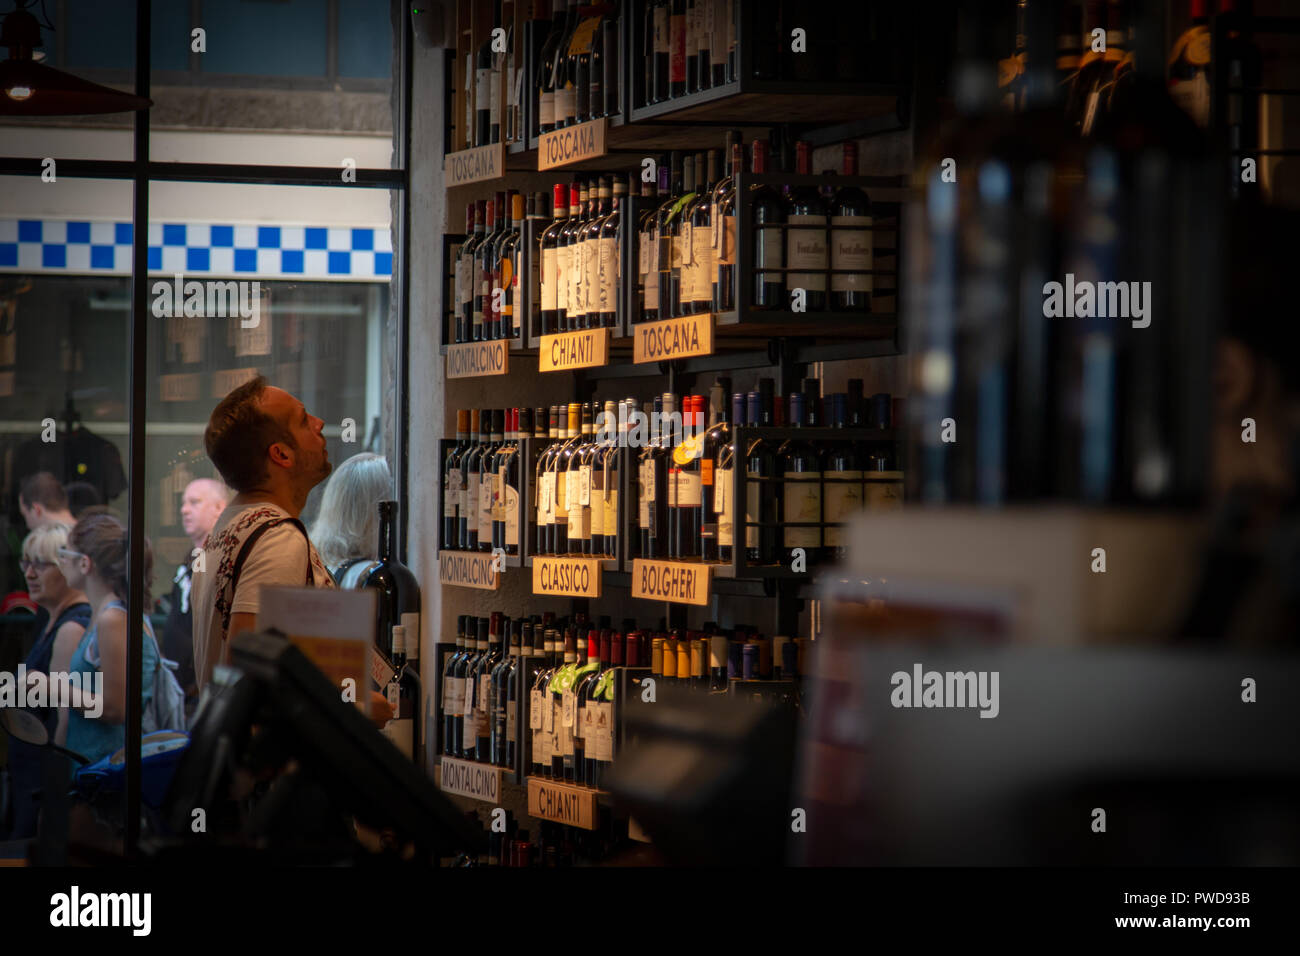 A man browses the wine choices in a shop in Florence, Italy. - Stock Image